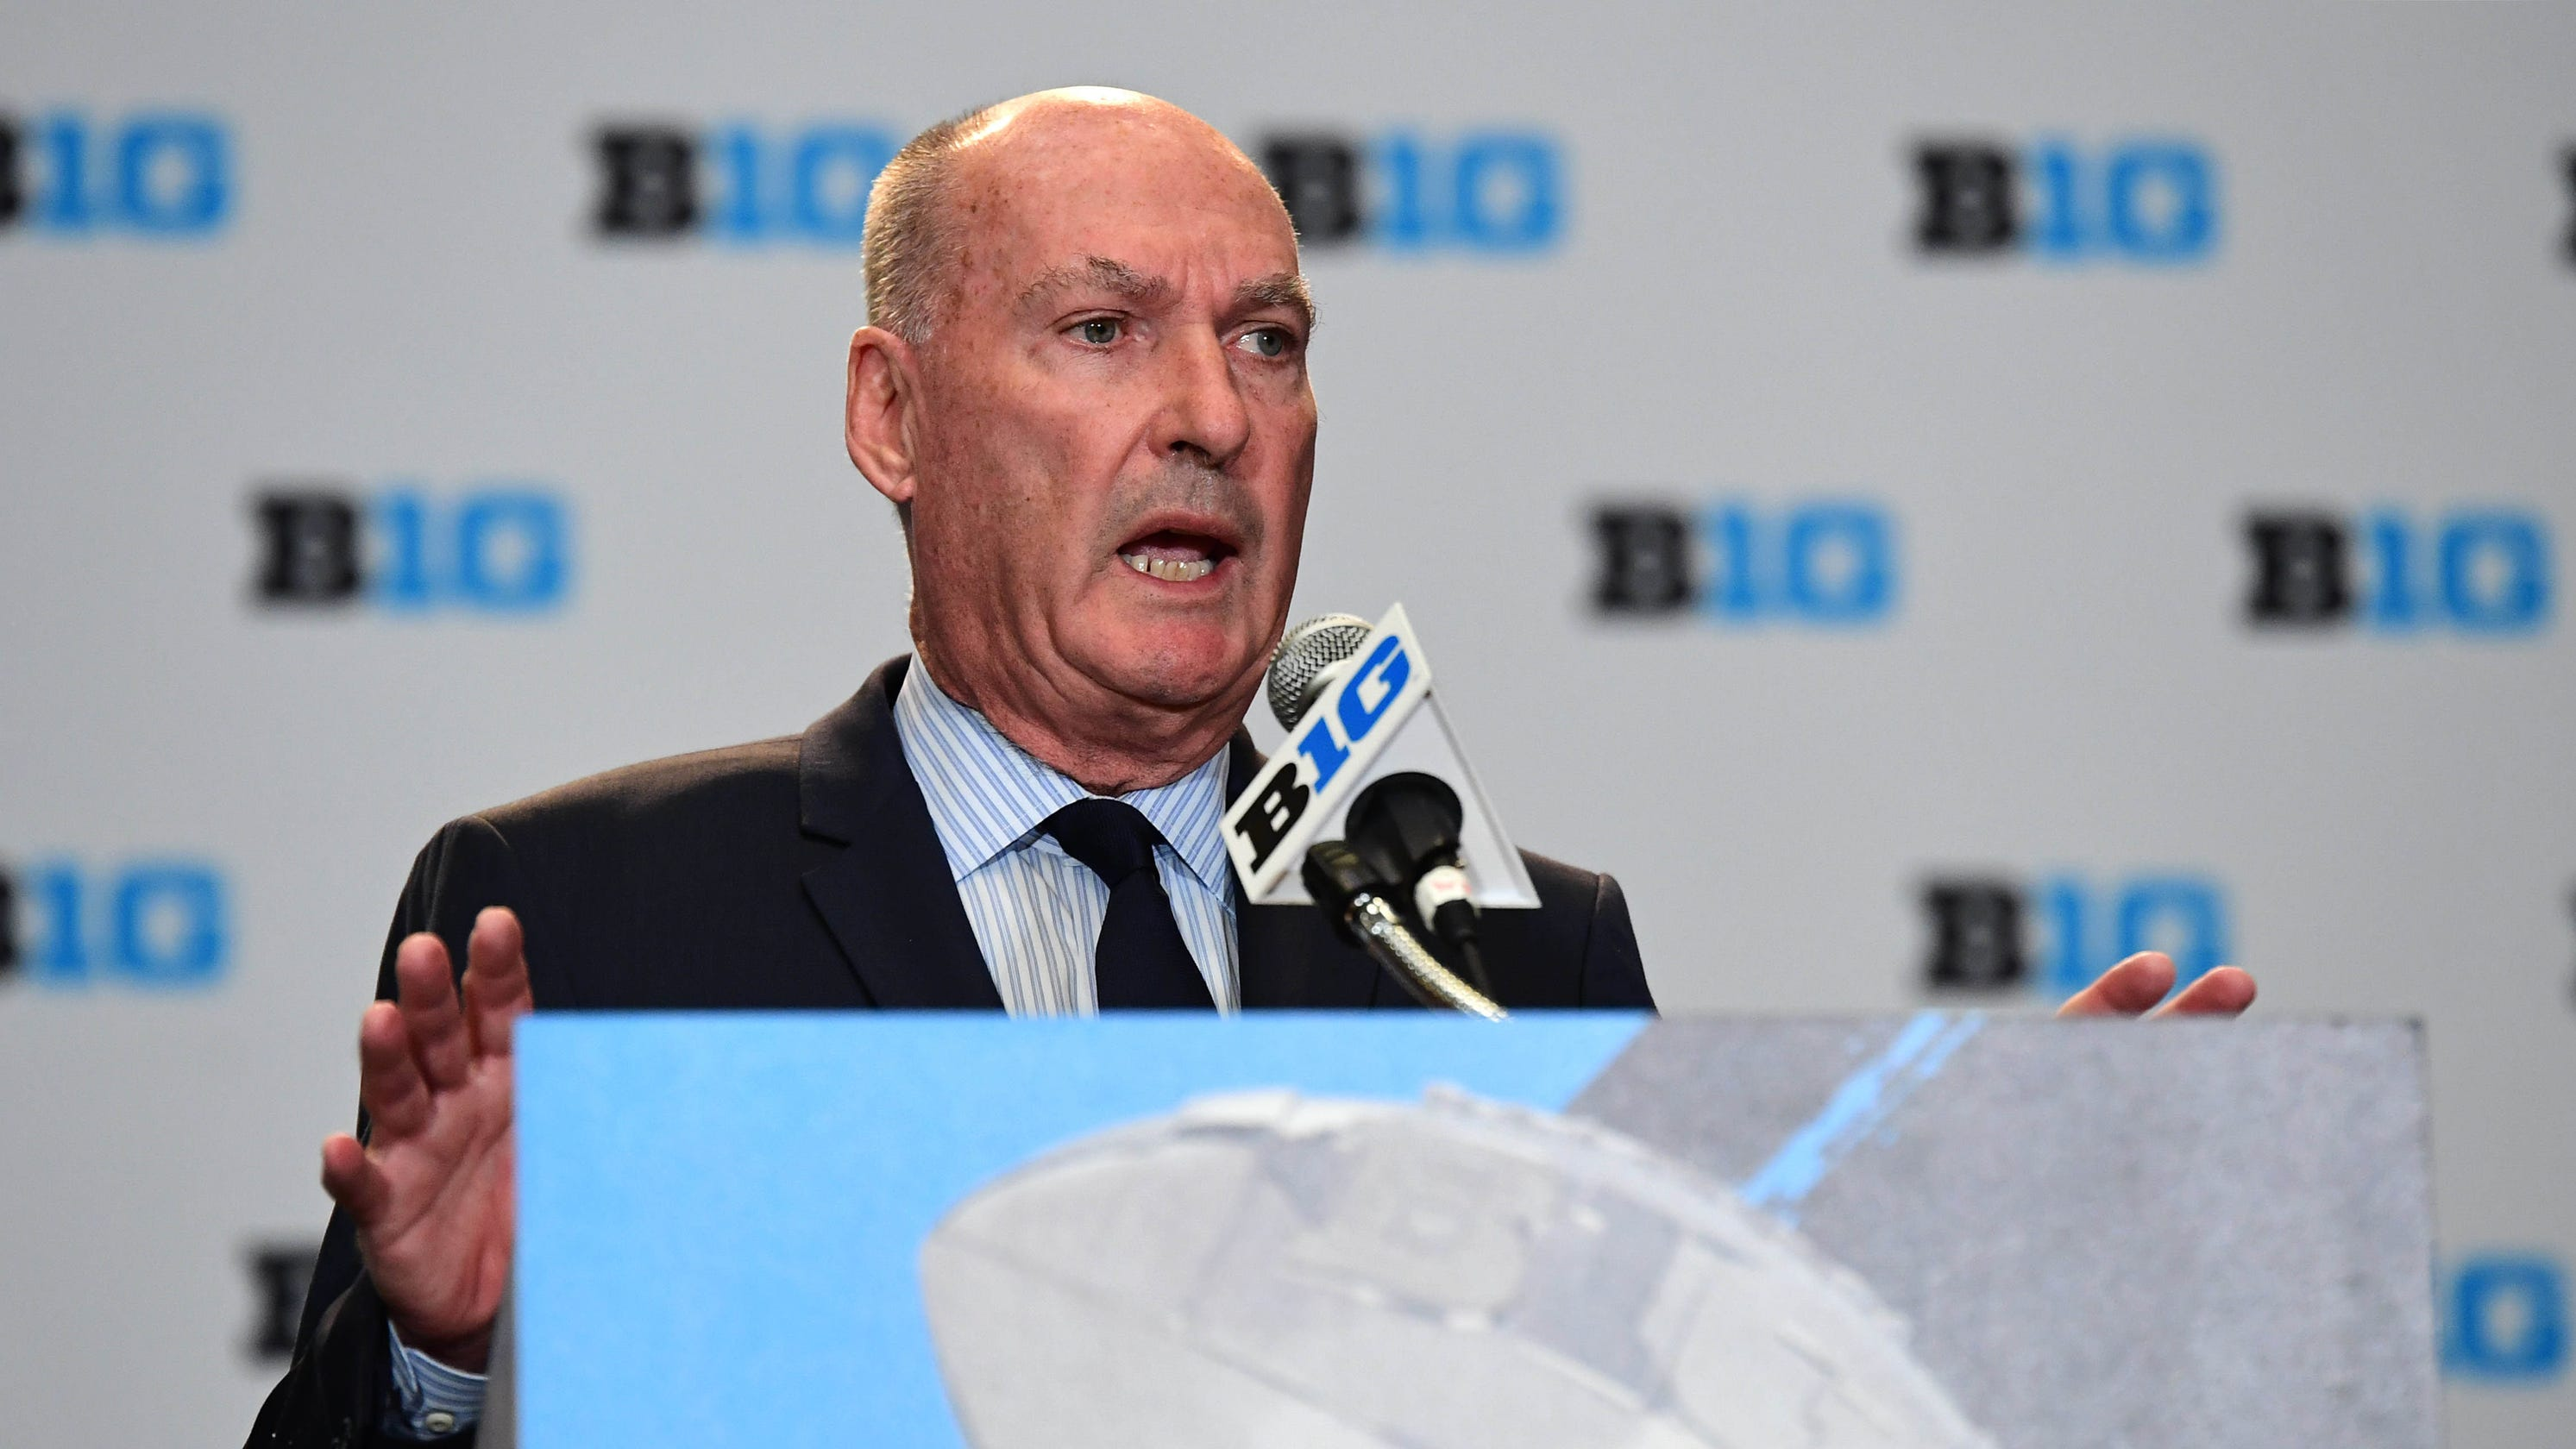 College Football Playoff: Jim Delany's retirement could mean expansion